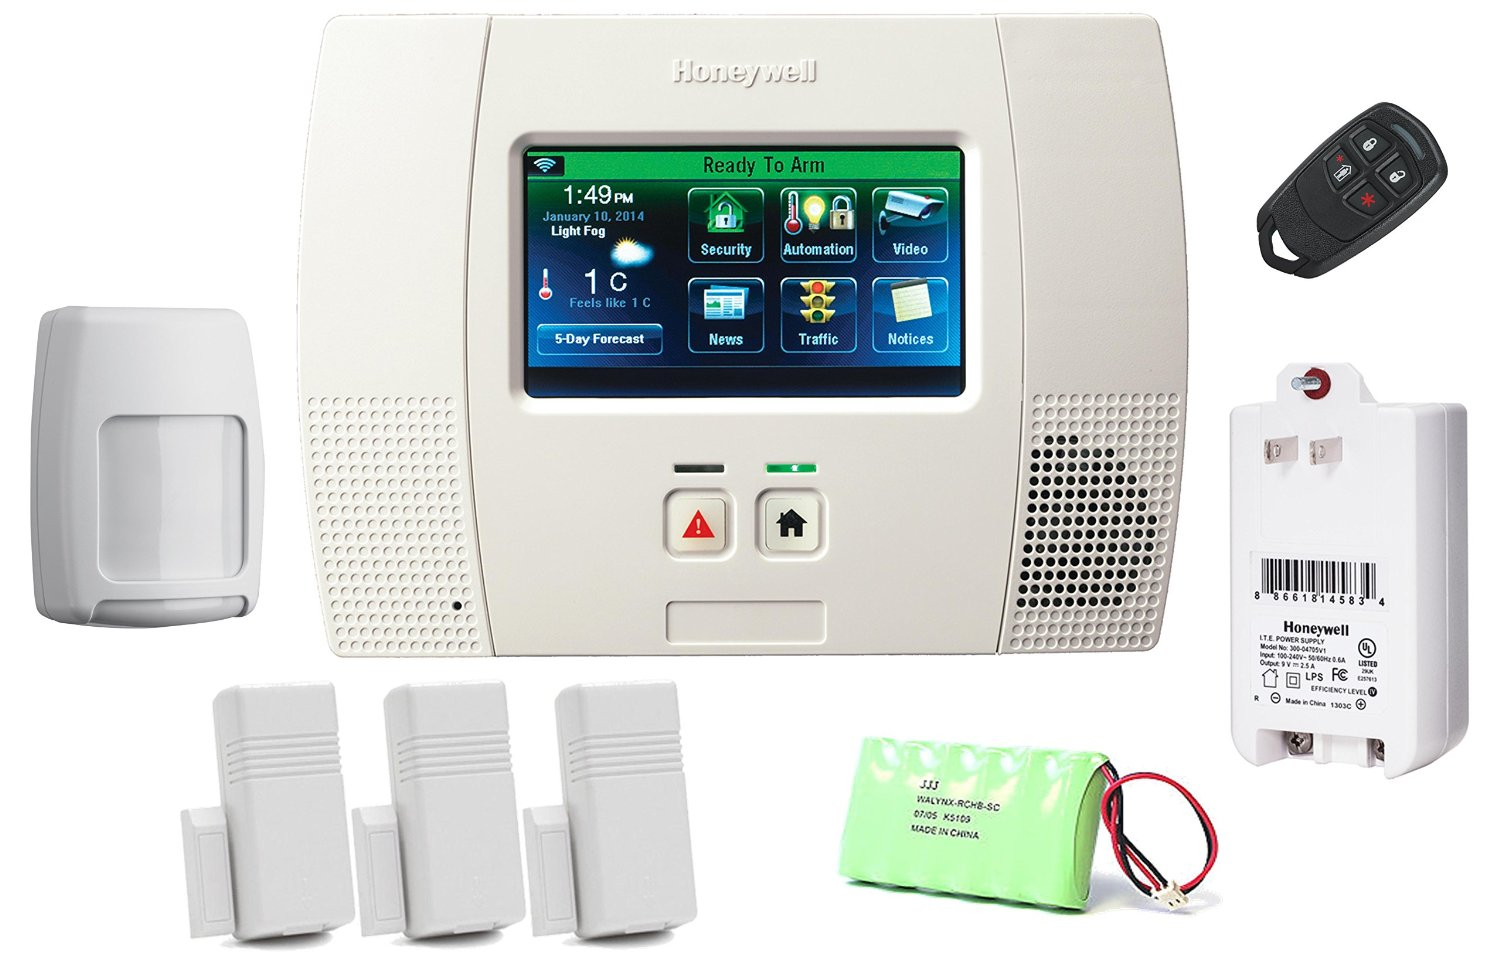 Honeywell Window Alarms